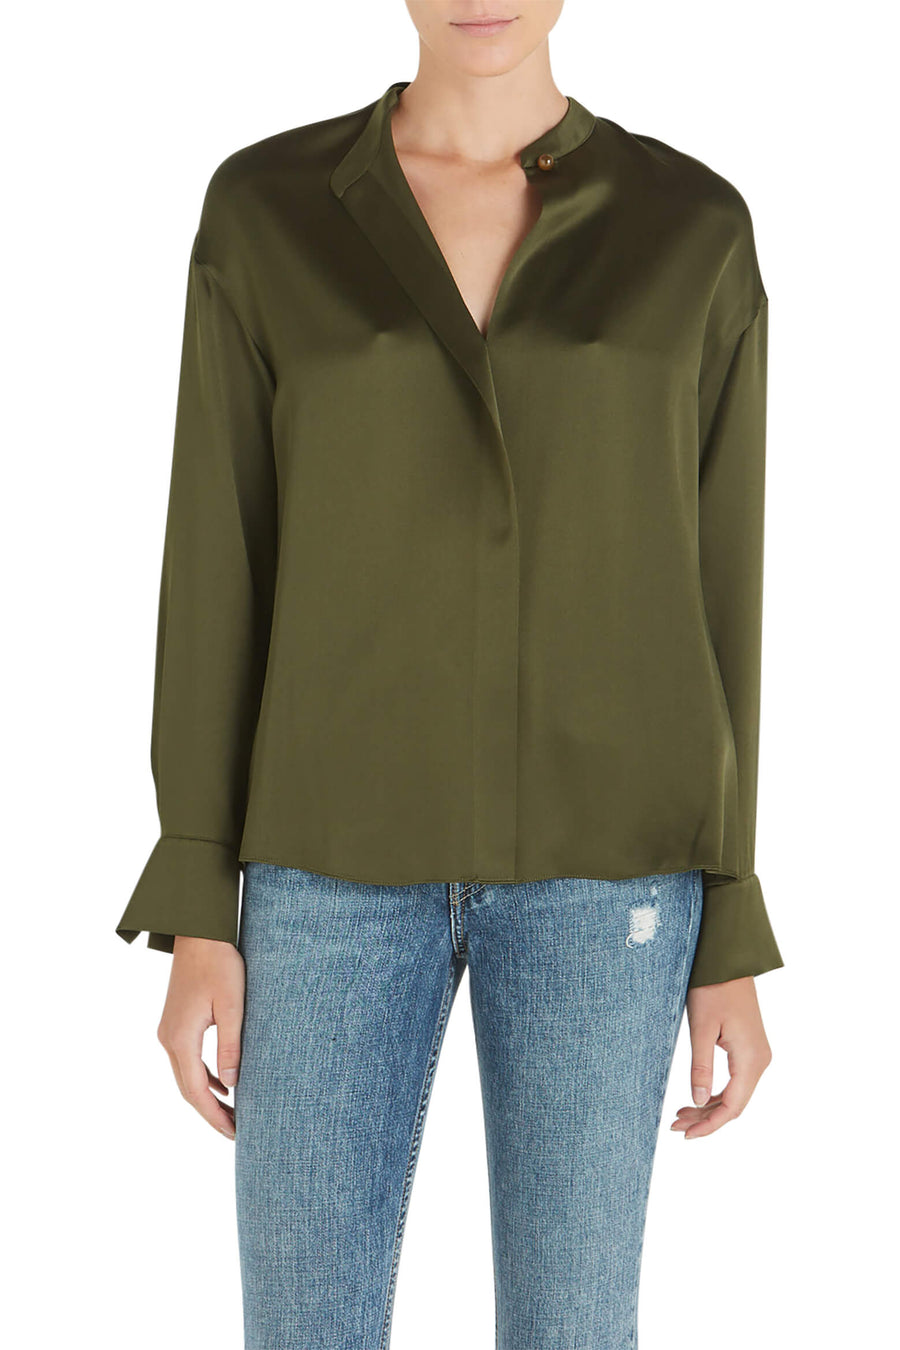 Vince Satin Long Sleeve Blouse Mineral Pine from The New Trend